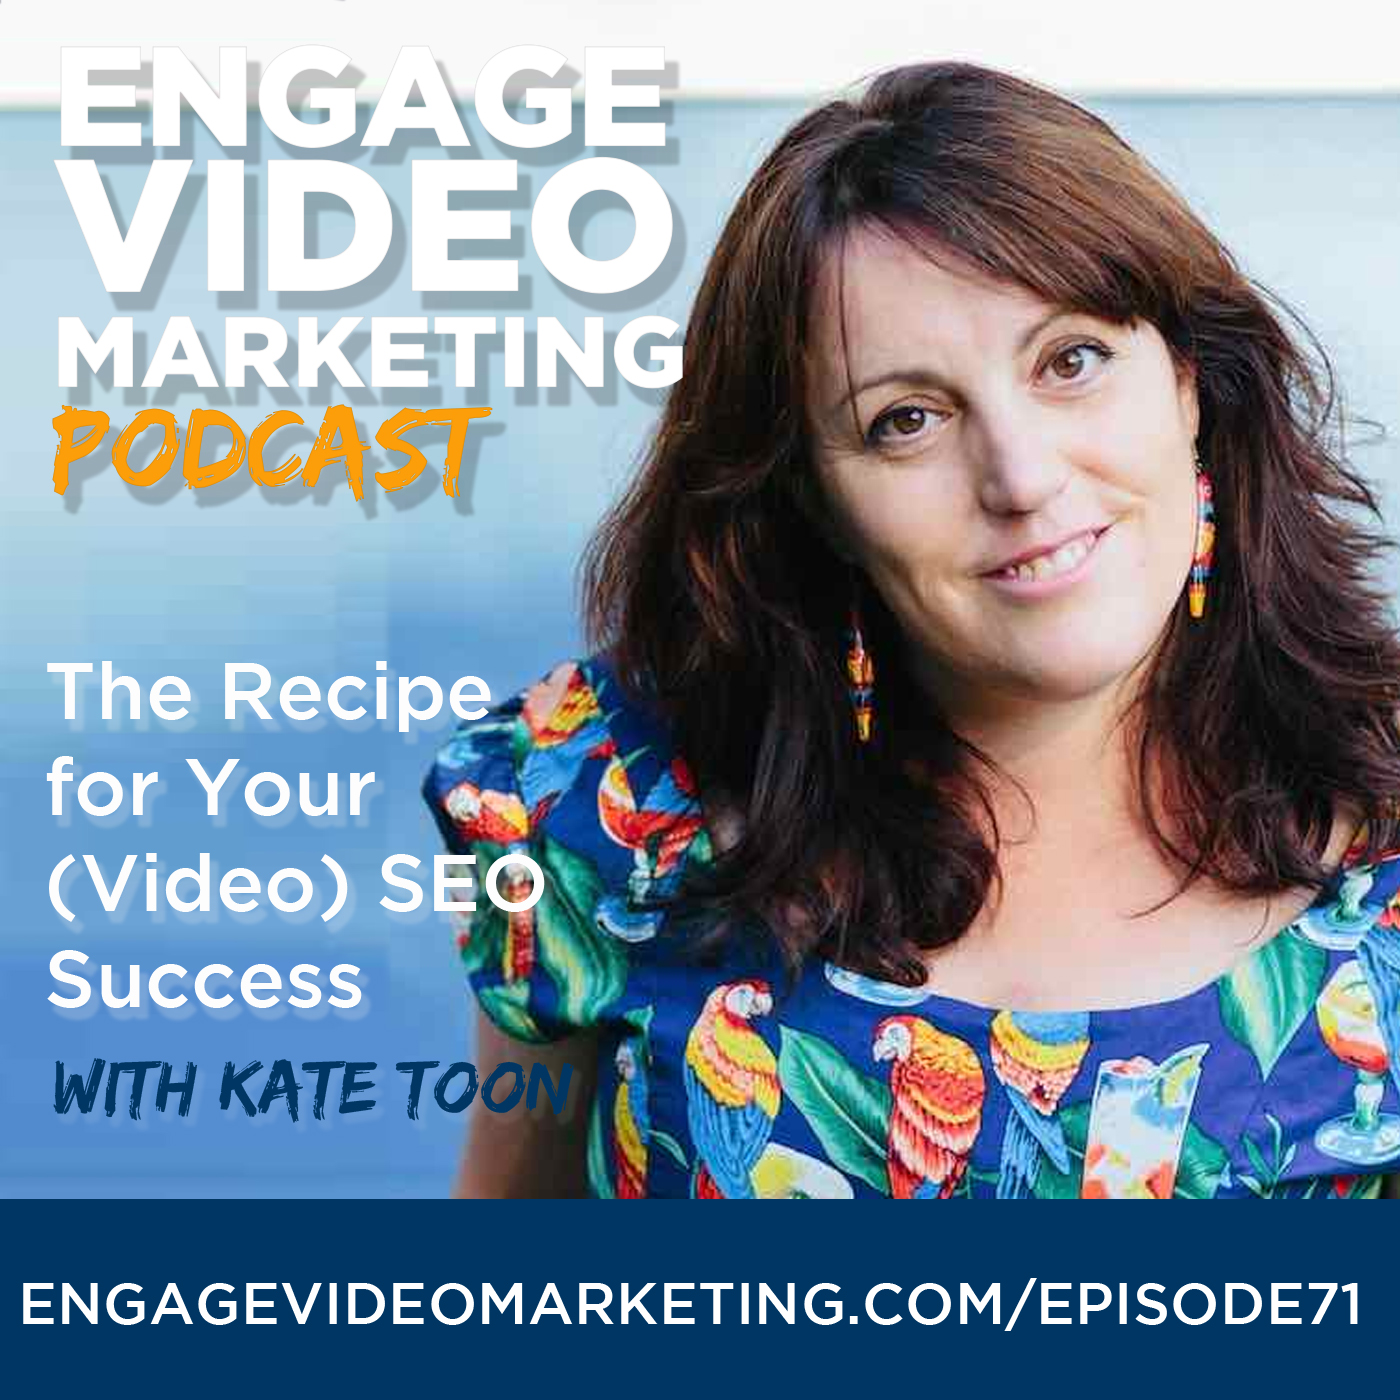 The Recipe for Your (Video) SEO Success with Kate Toon